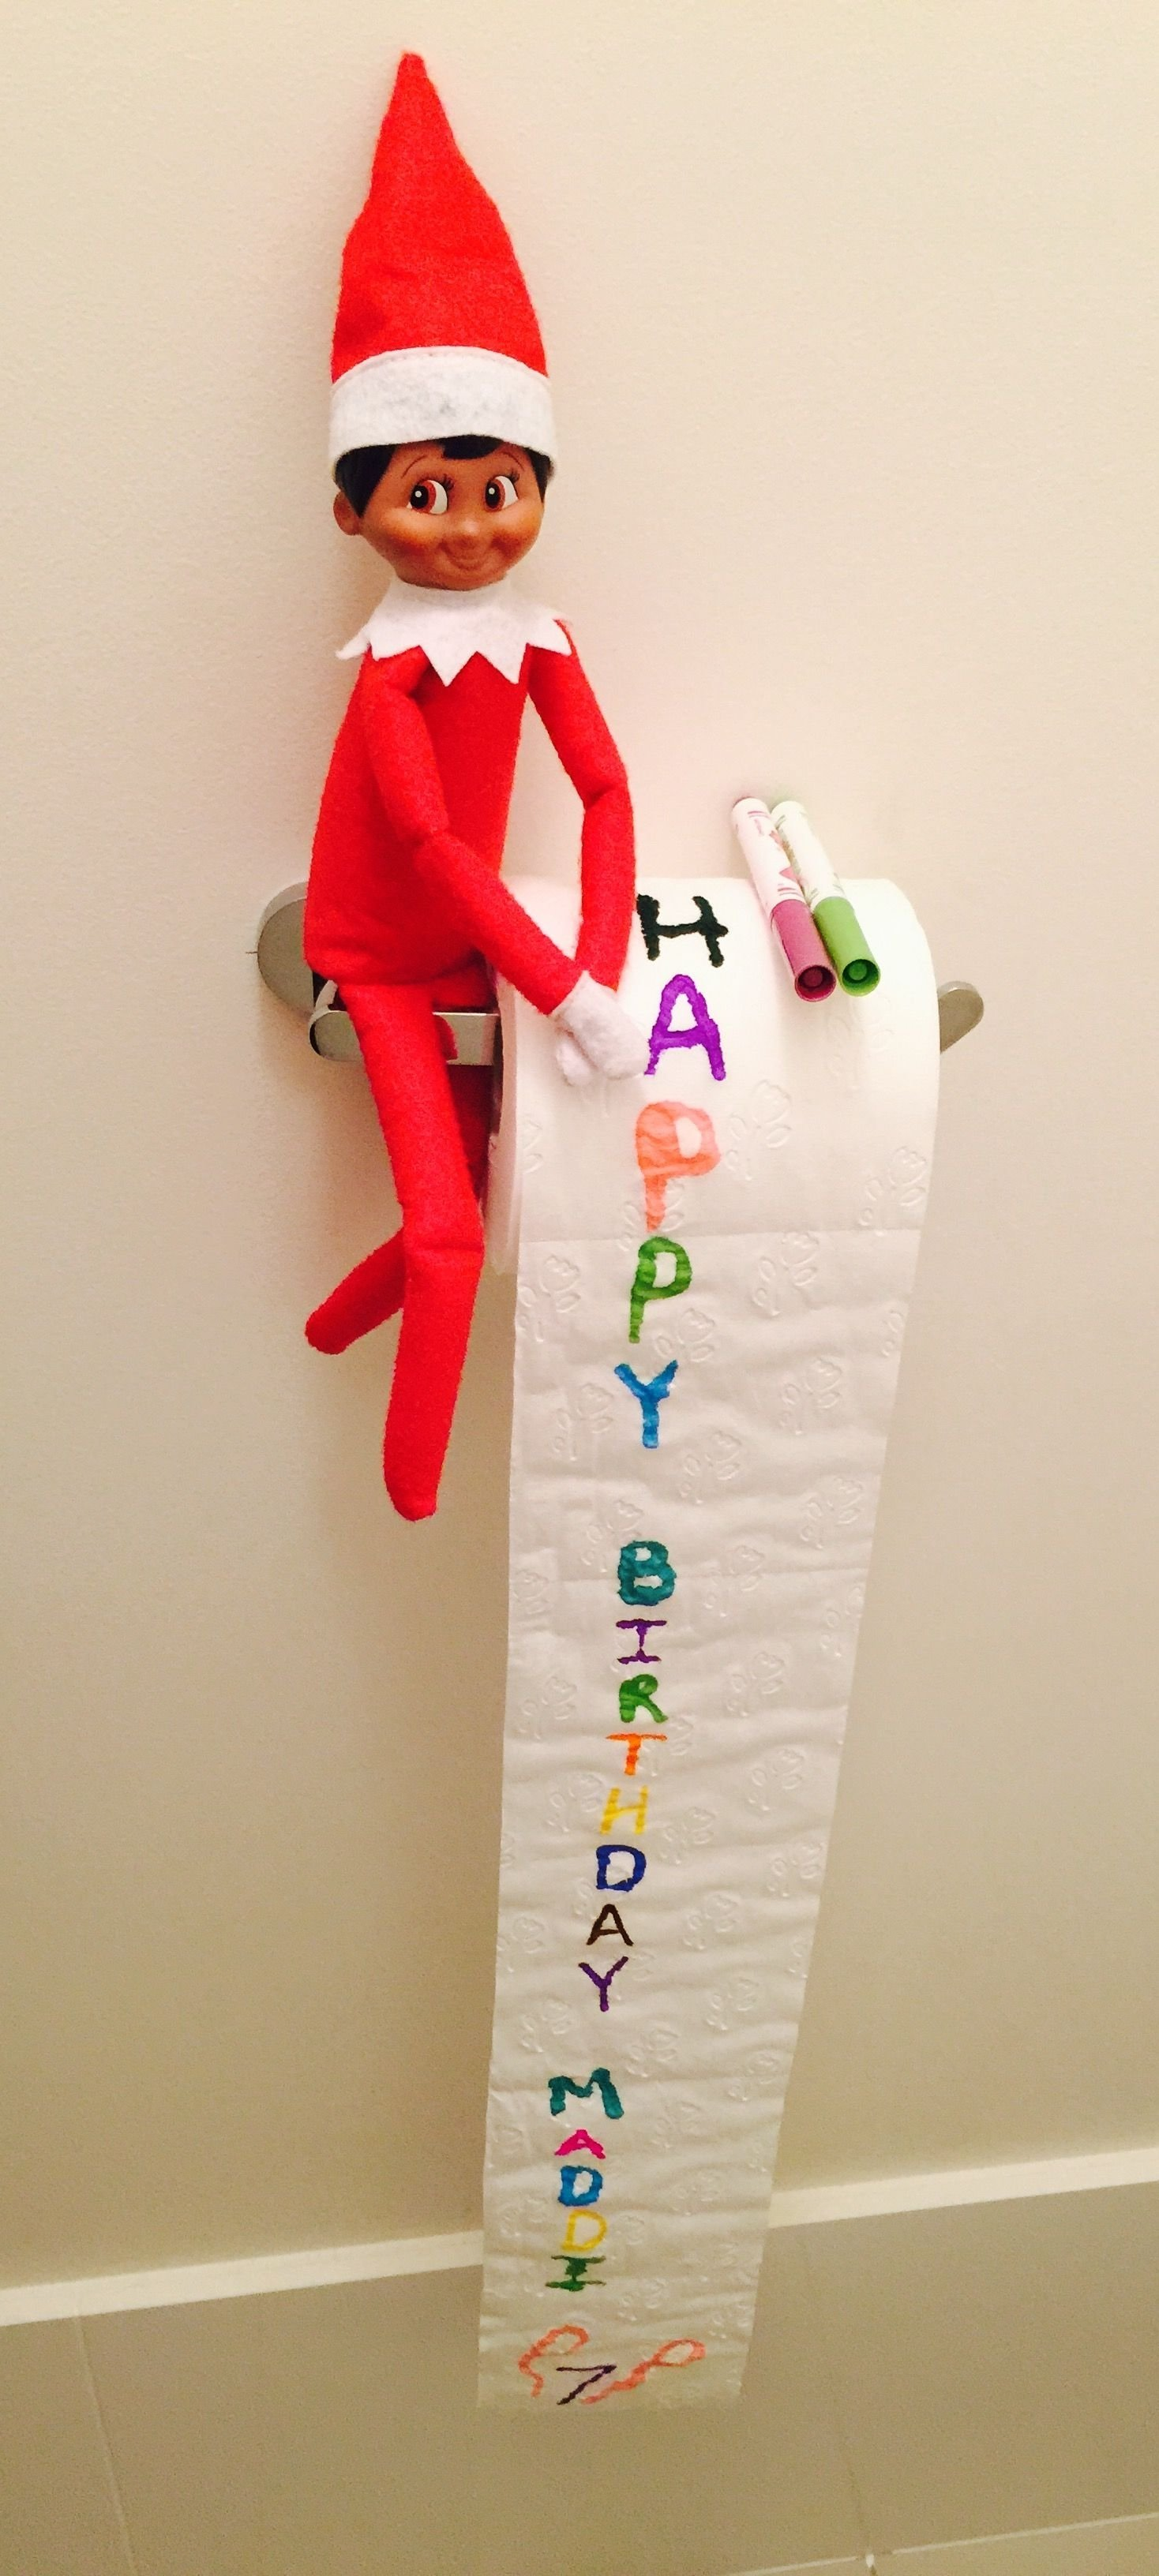 10 Best Elf On The Shelf Birthday Ideas day 11 elf on the shelf jami wanted to surprise maddi and wish her